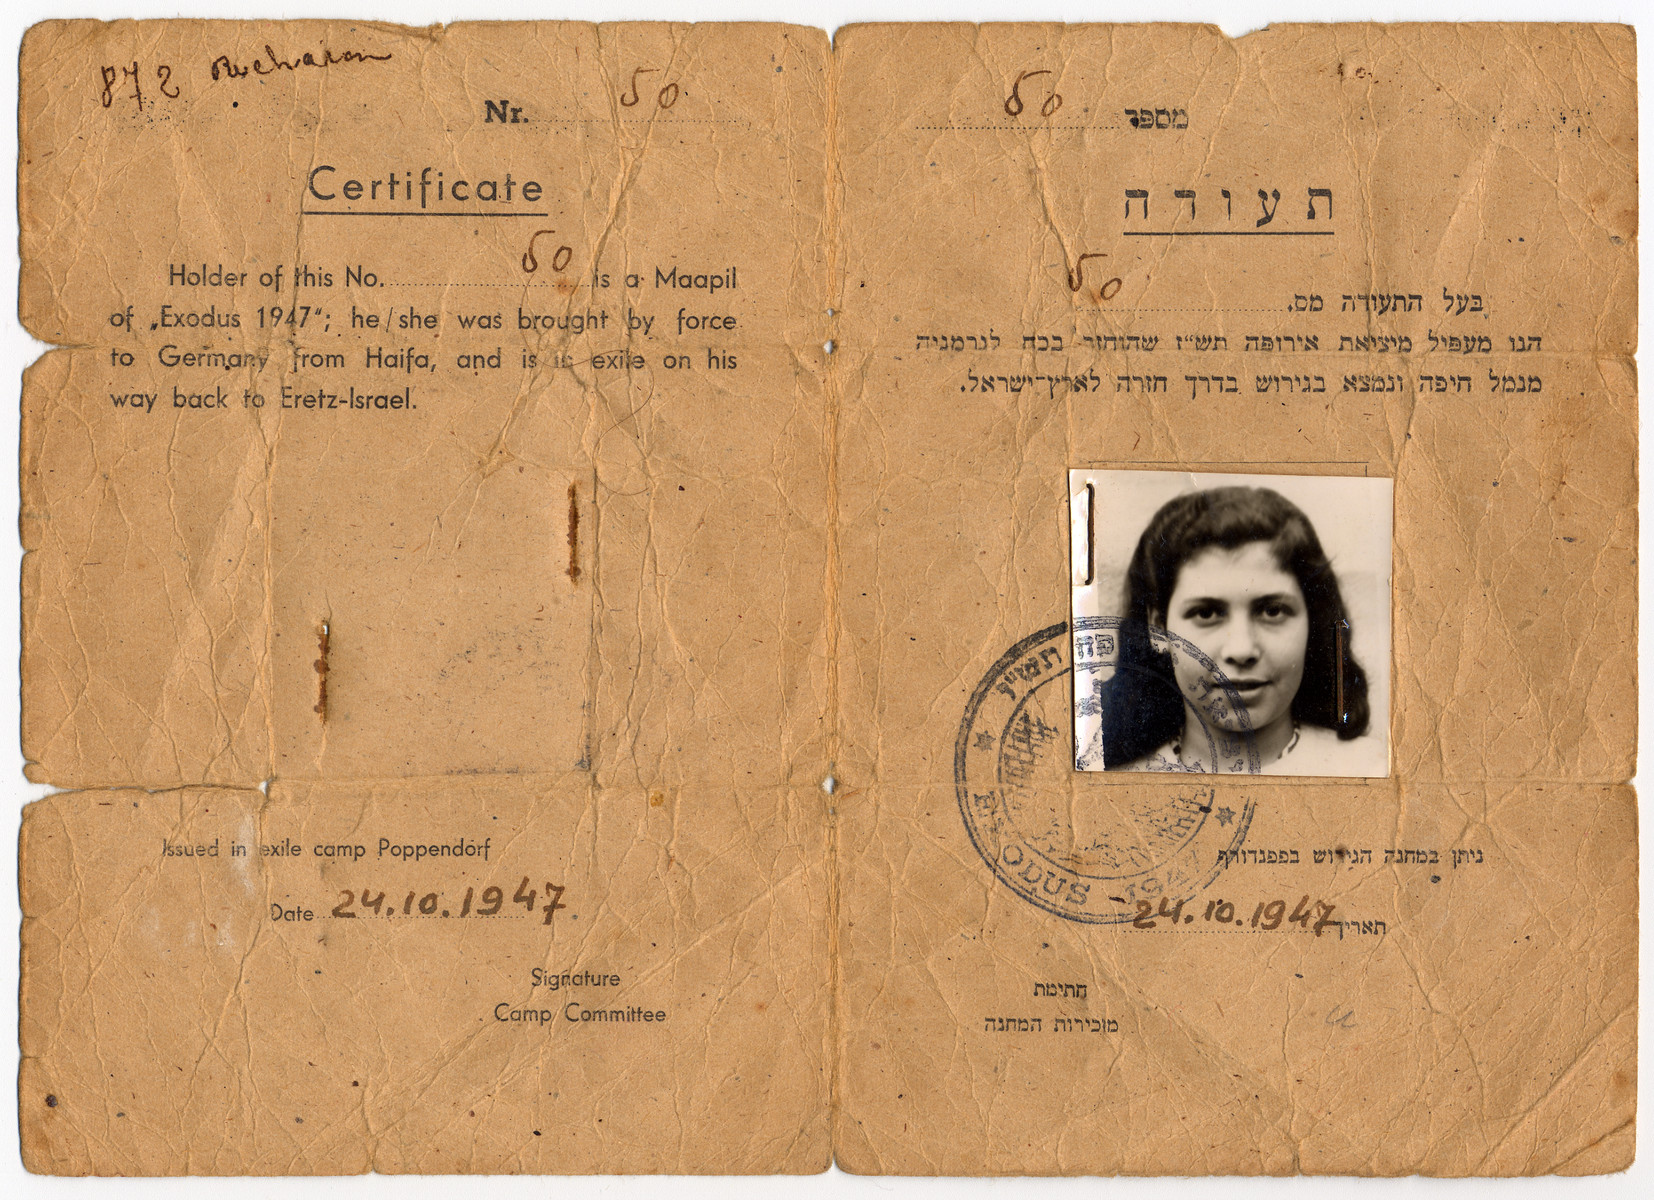 Identity card issued to former Exodus passenger Irene Burenstein in the Poppendorf DP camp.